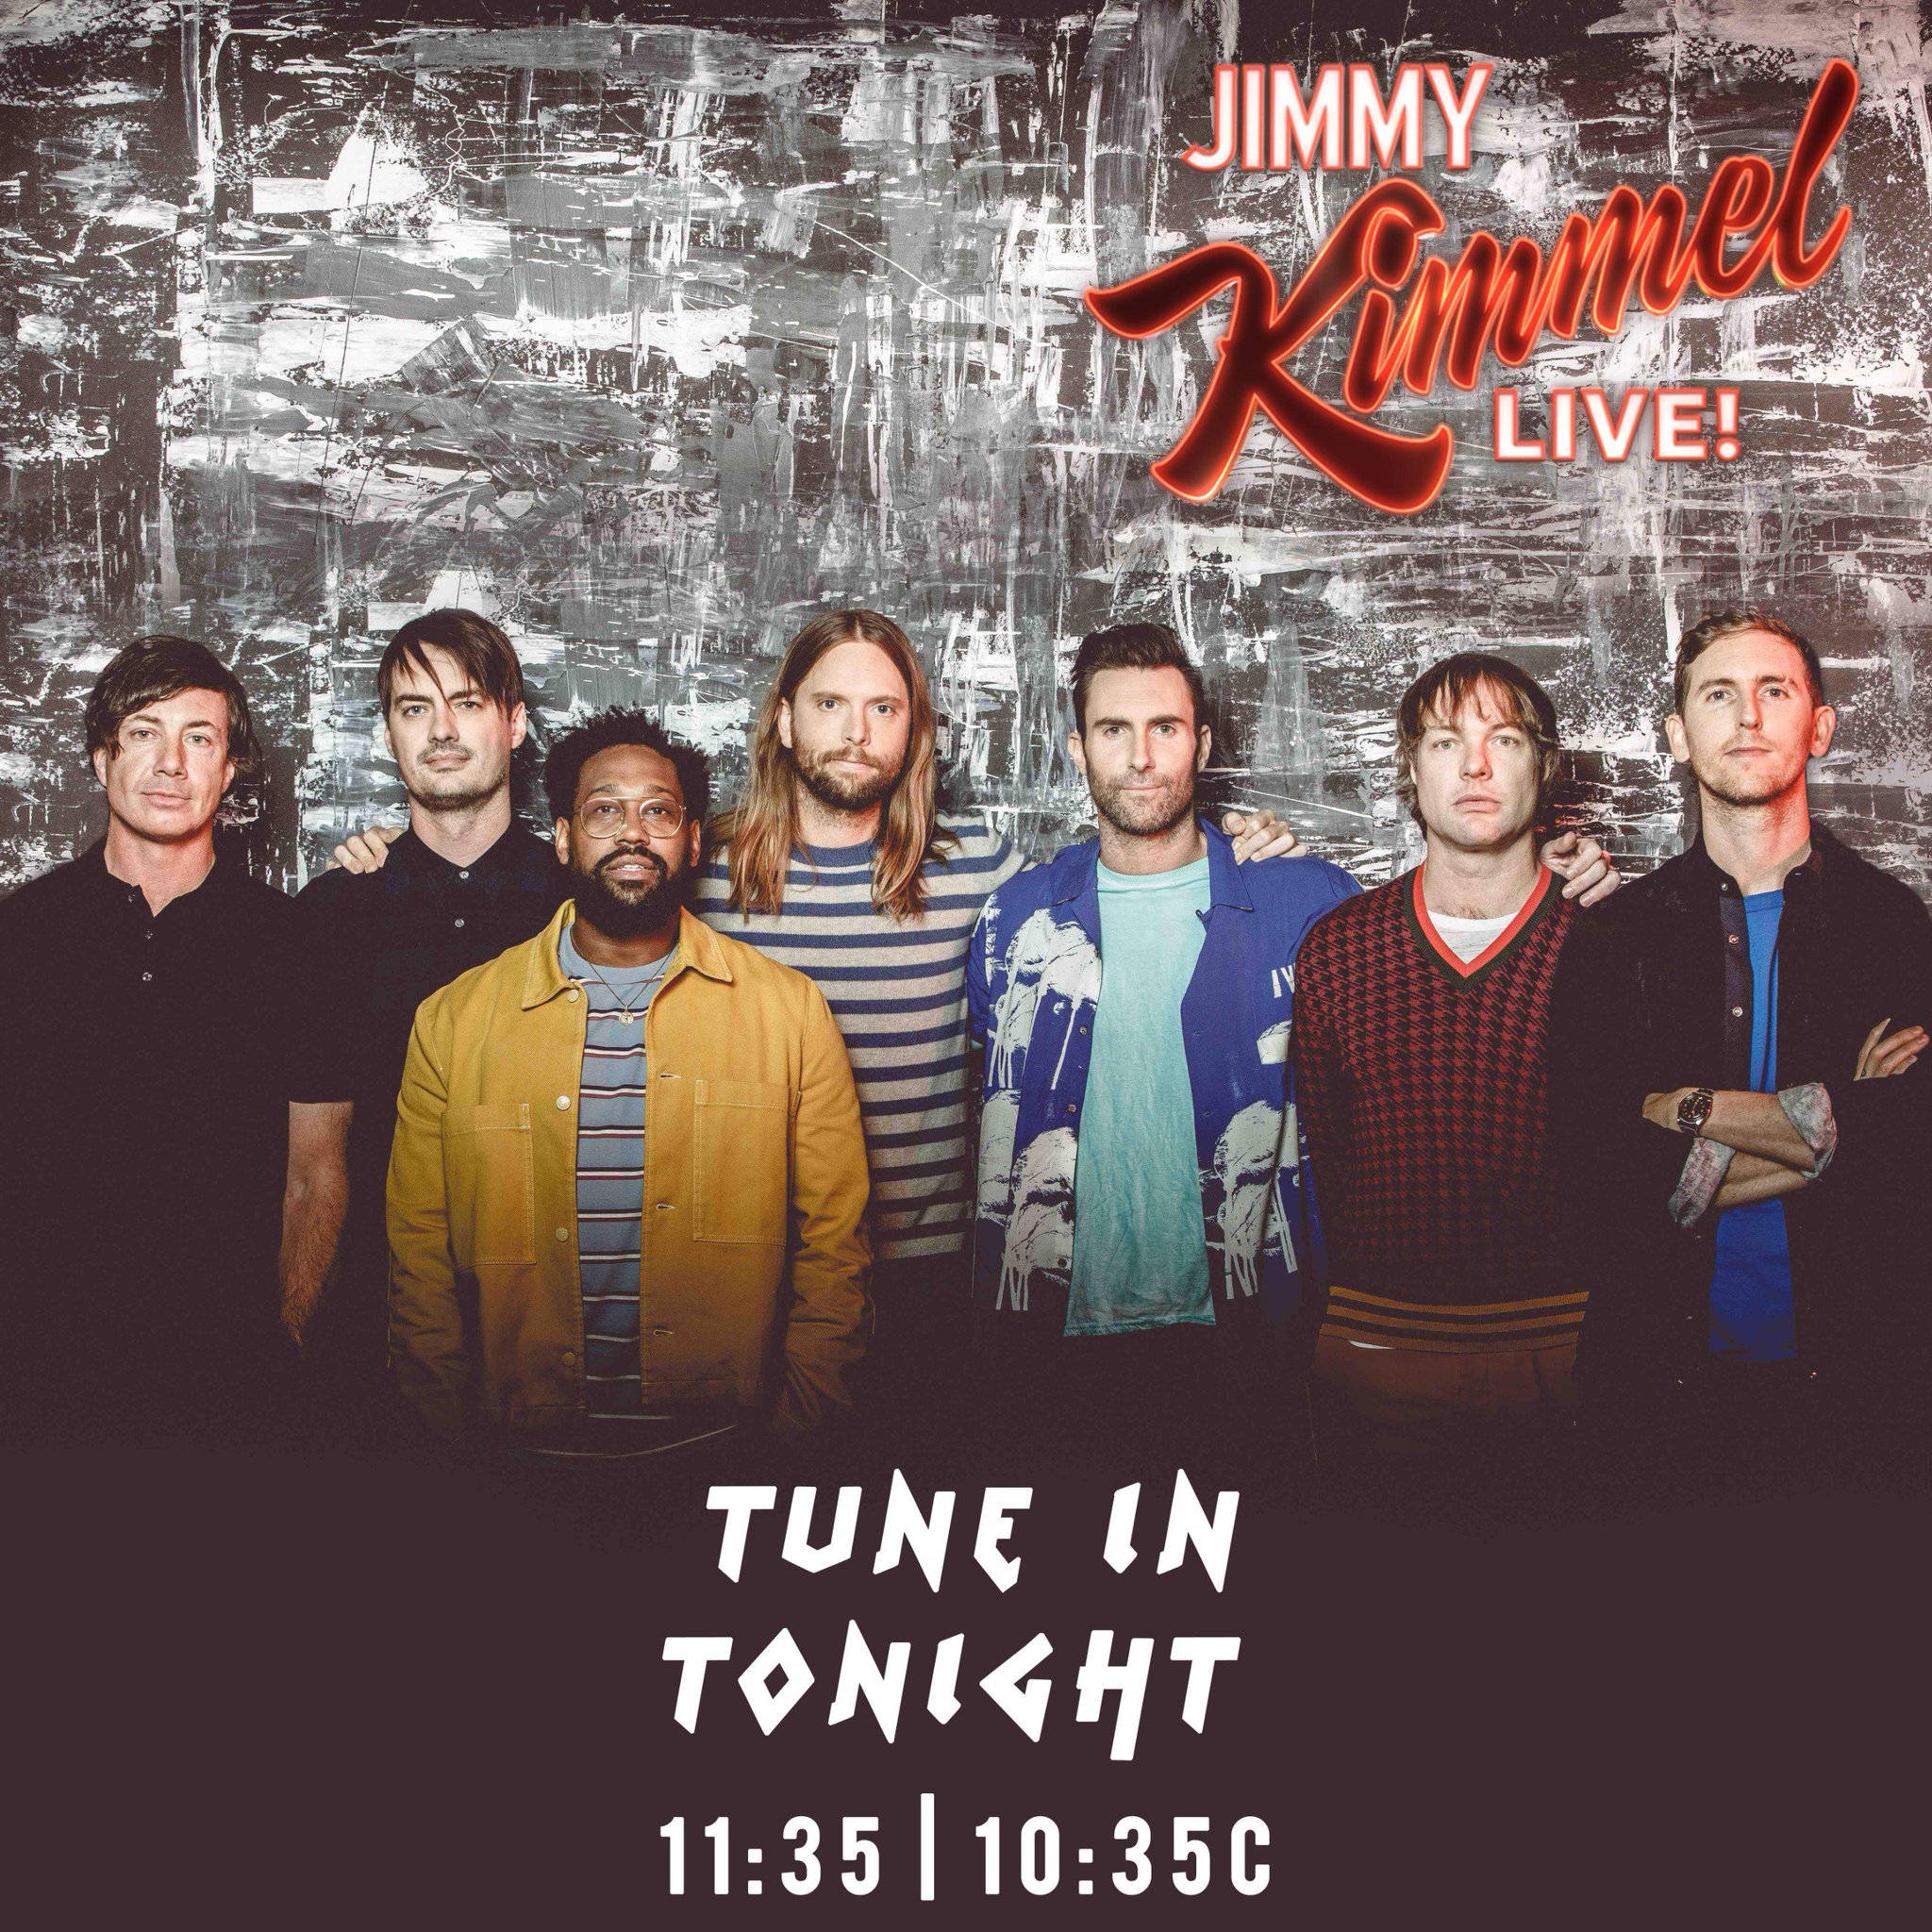 Tonight! Tune-in to @JimmyKimmelLive for a special performance of our new single #WAIT https://t.co/Vsbpnw1q4f